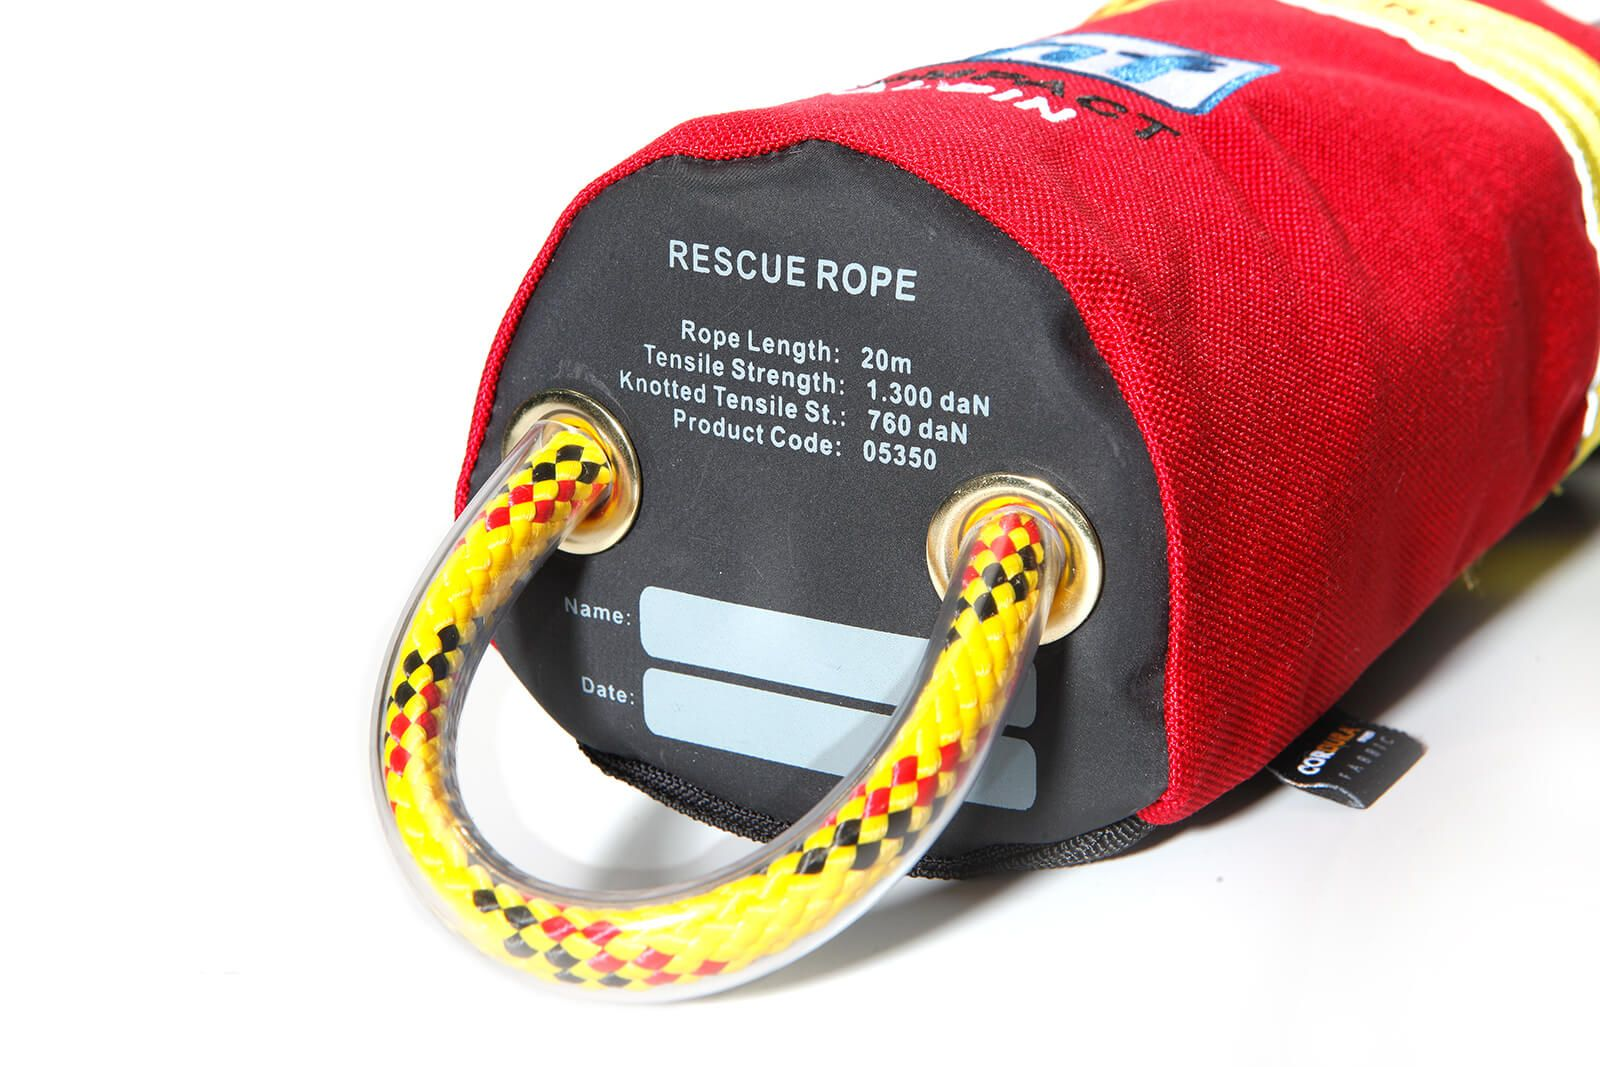 Hf Alpin 20m Throwline Safety And Rescue Equipment